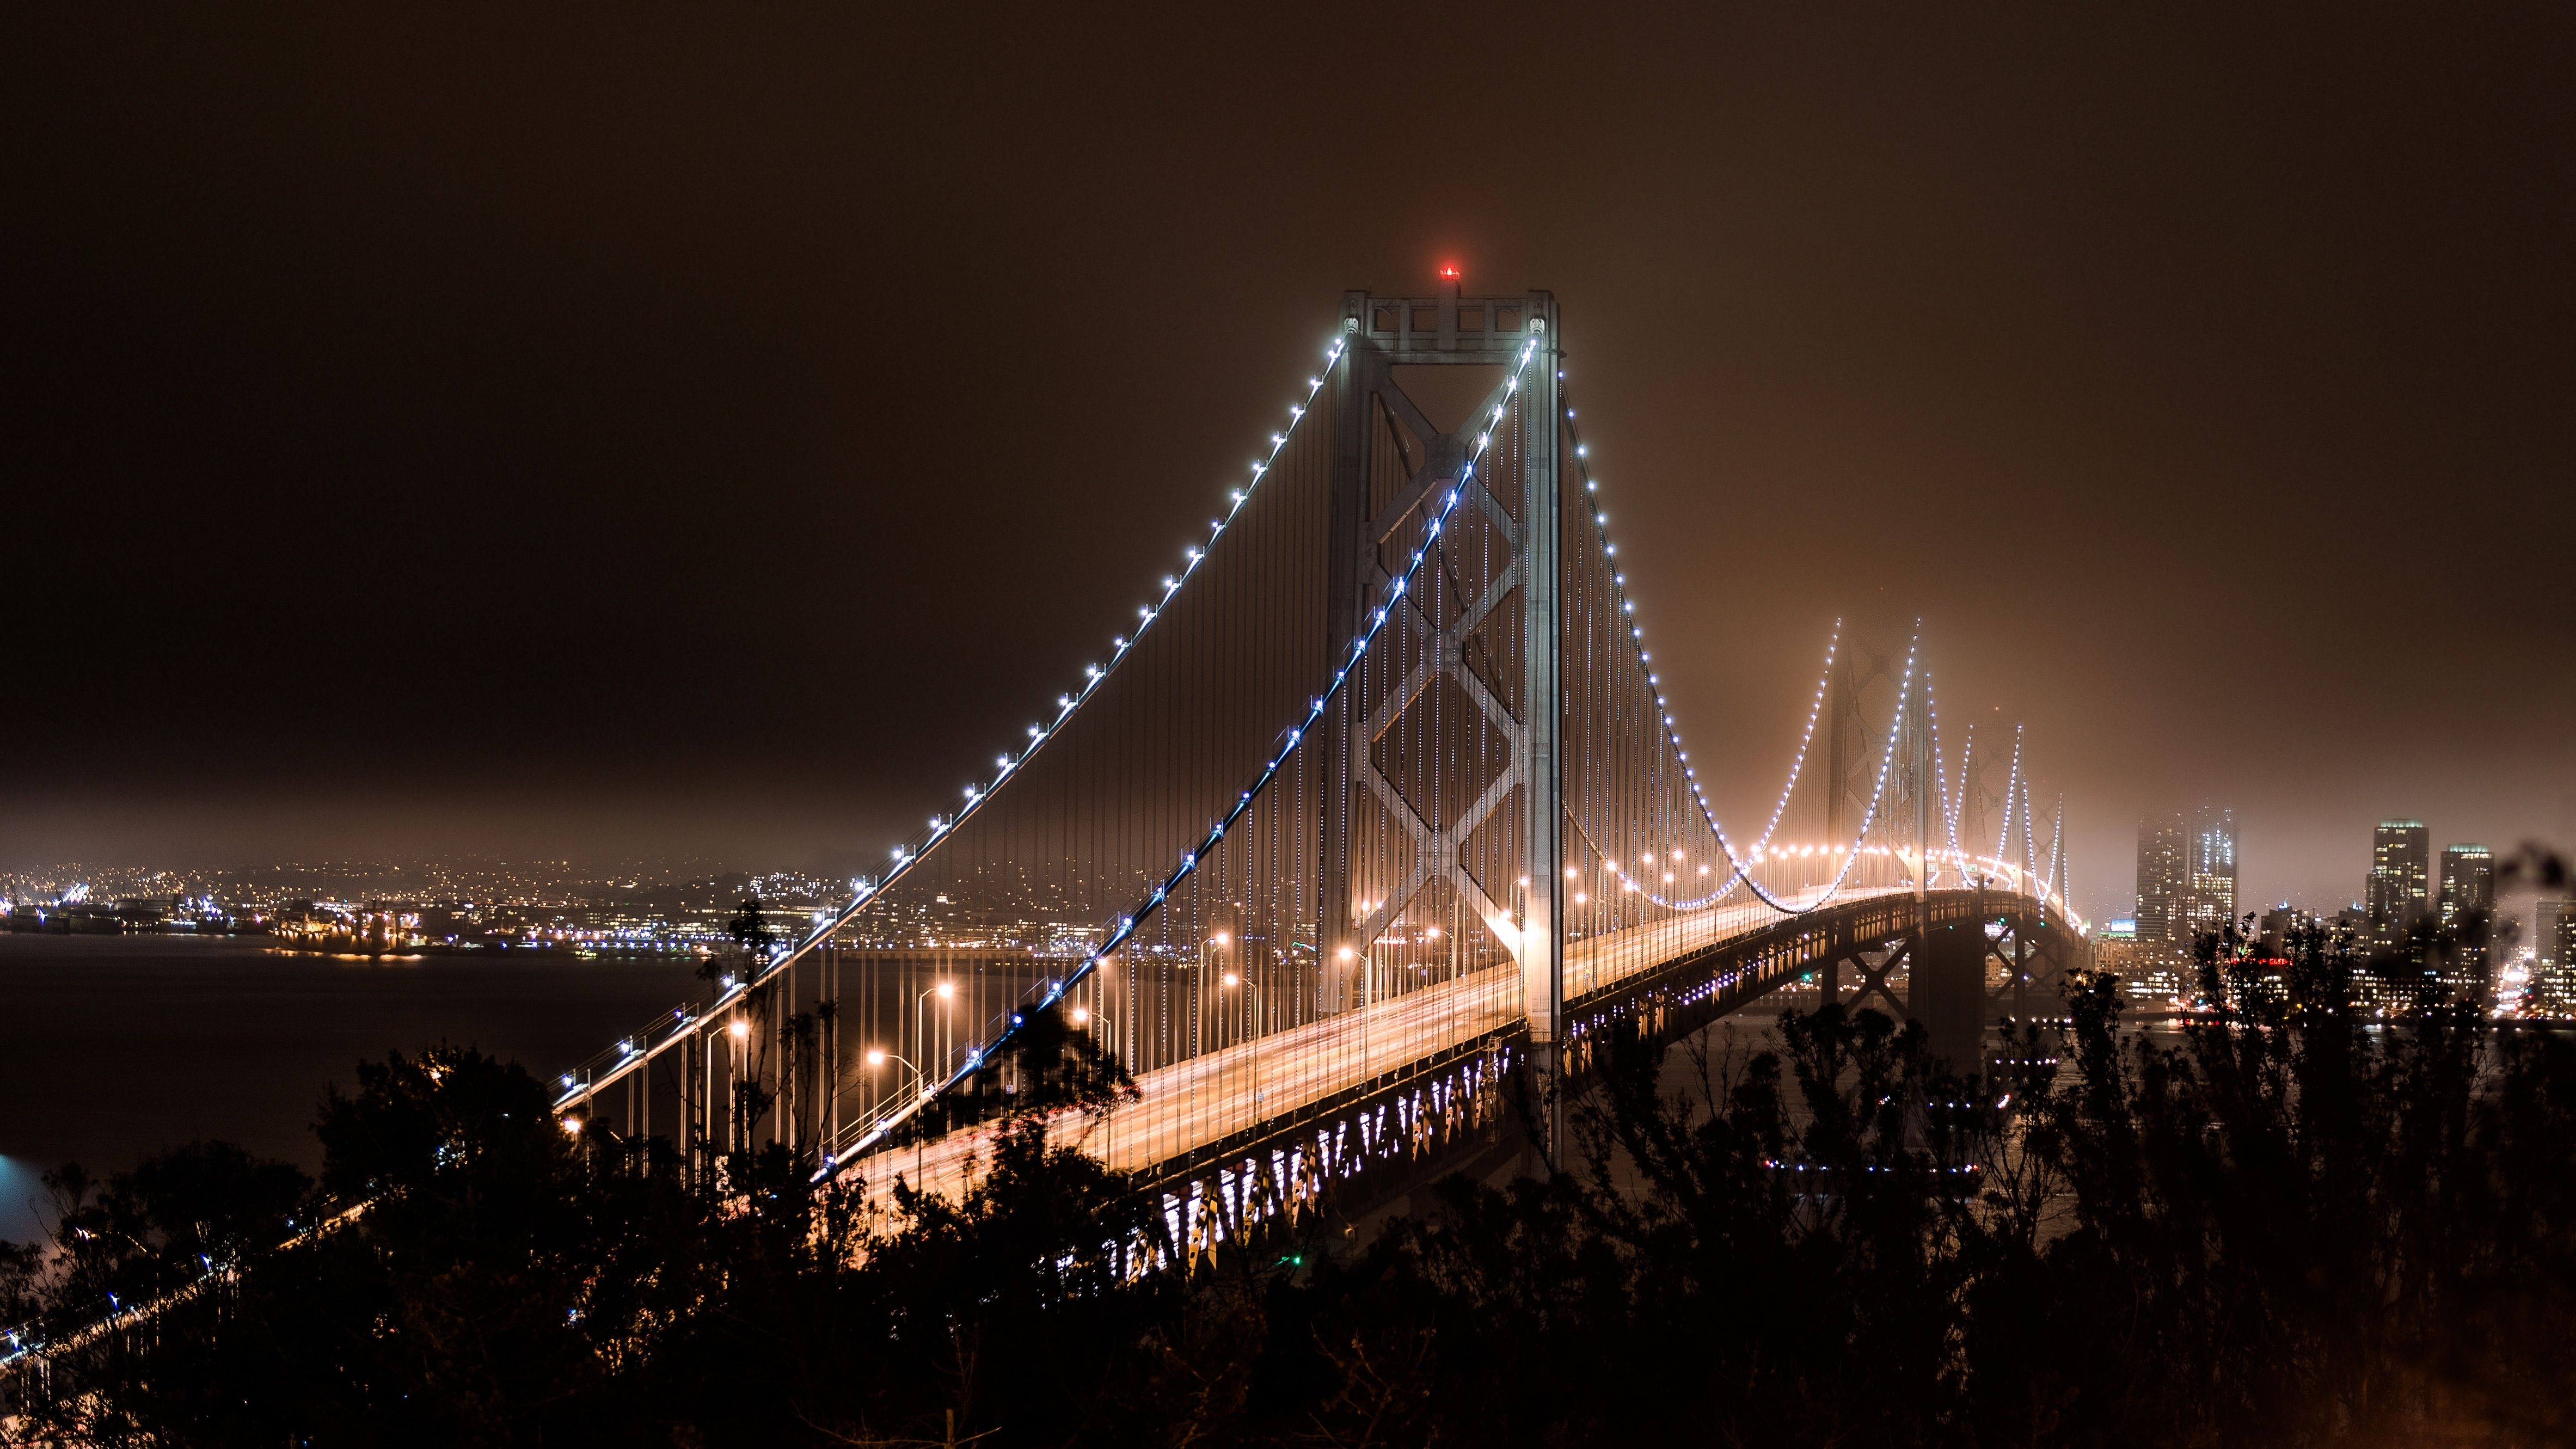 This Reminds Me Of A Bridge In My Fictional City Of Babylon In Babylon One Side Of The Bridge Is The Newer And More San Francisco Bridge Bay Bridge Dark City